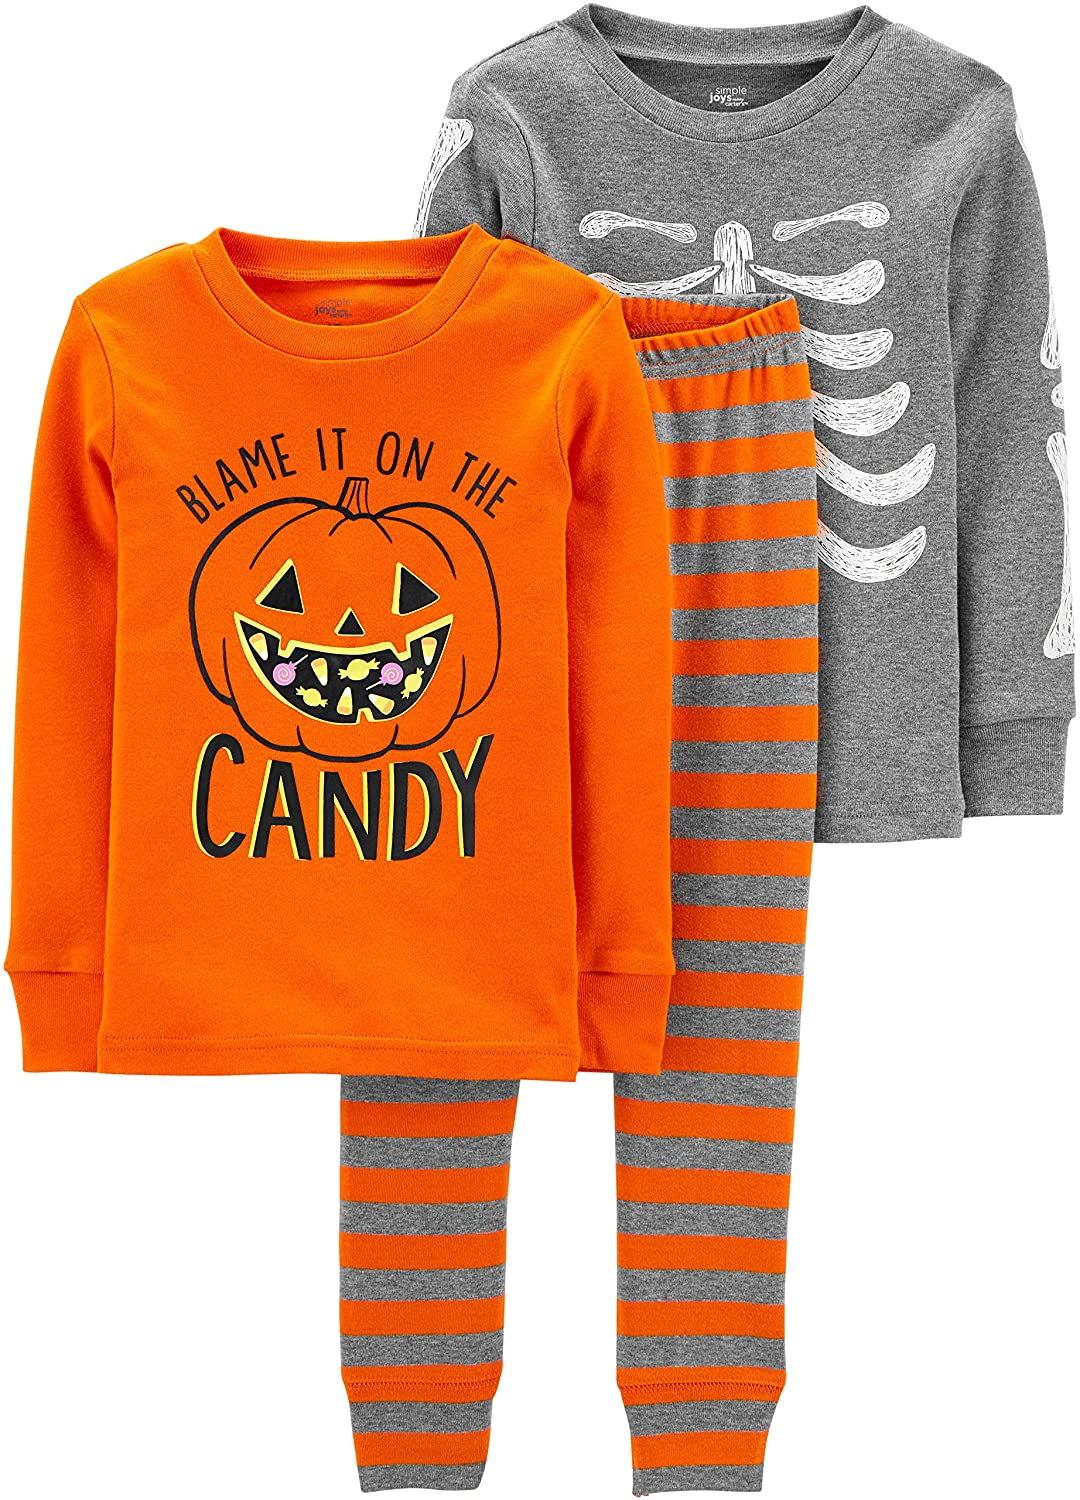 Simple Joys by Carter's Baby and Toddler 3-Piece Snug-Fit Cotton Halloween Pajama Set: Clothing